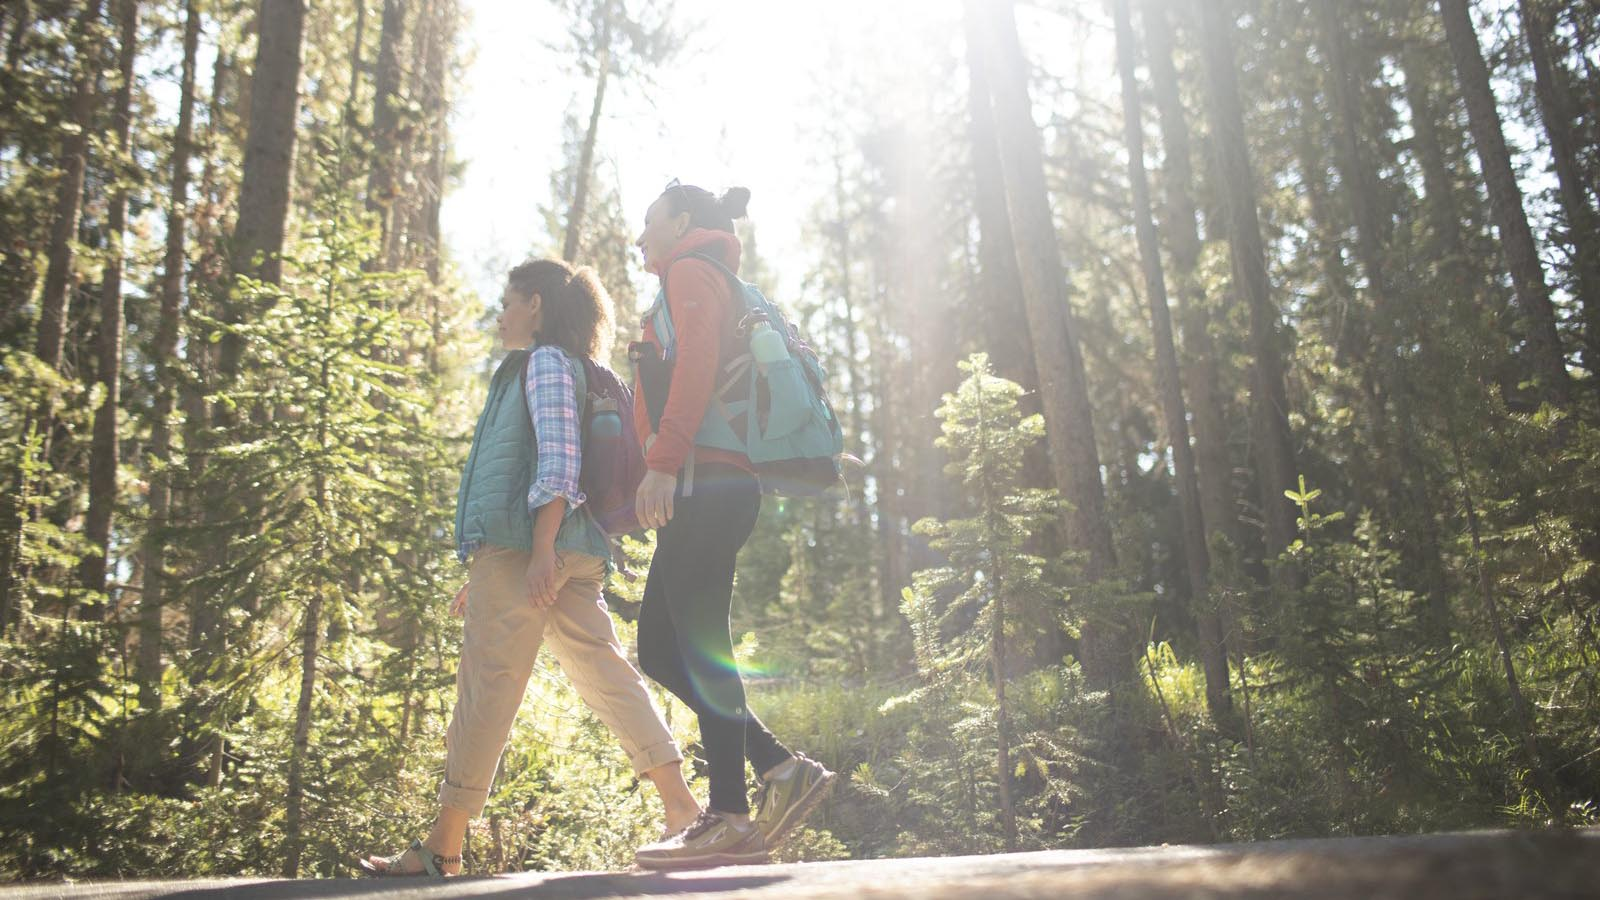 Two women hiking in the forest.